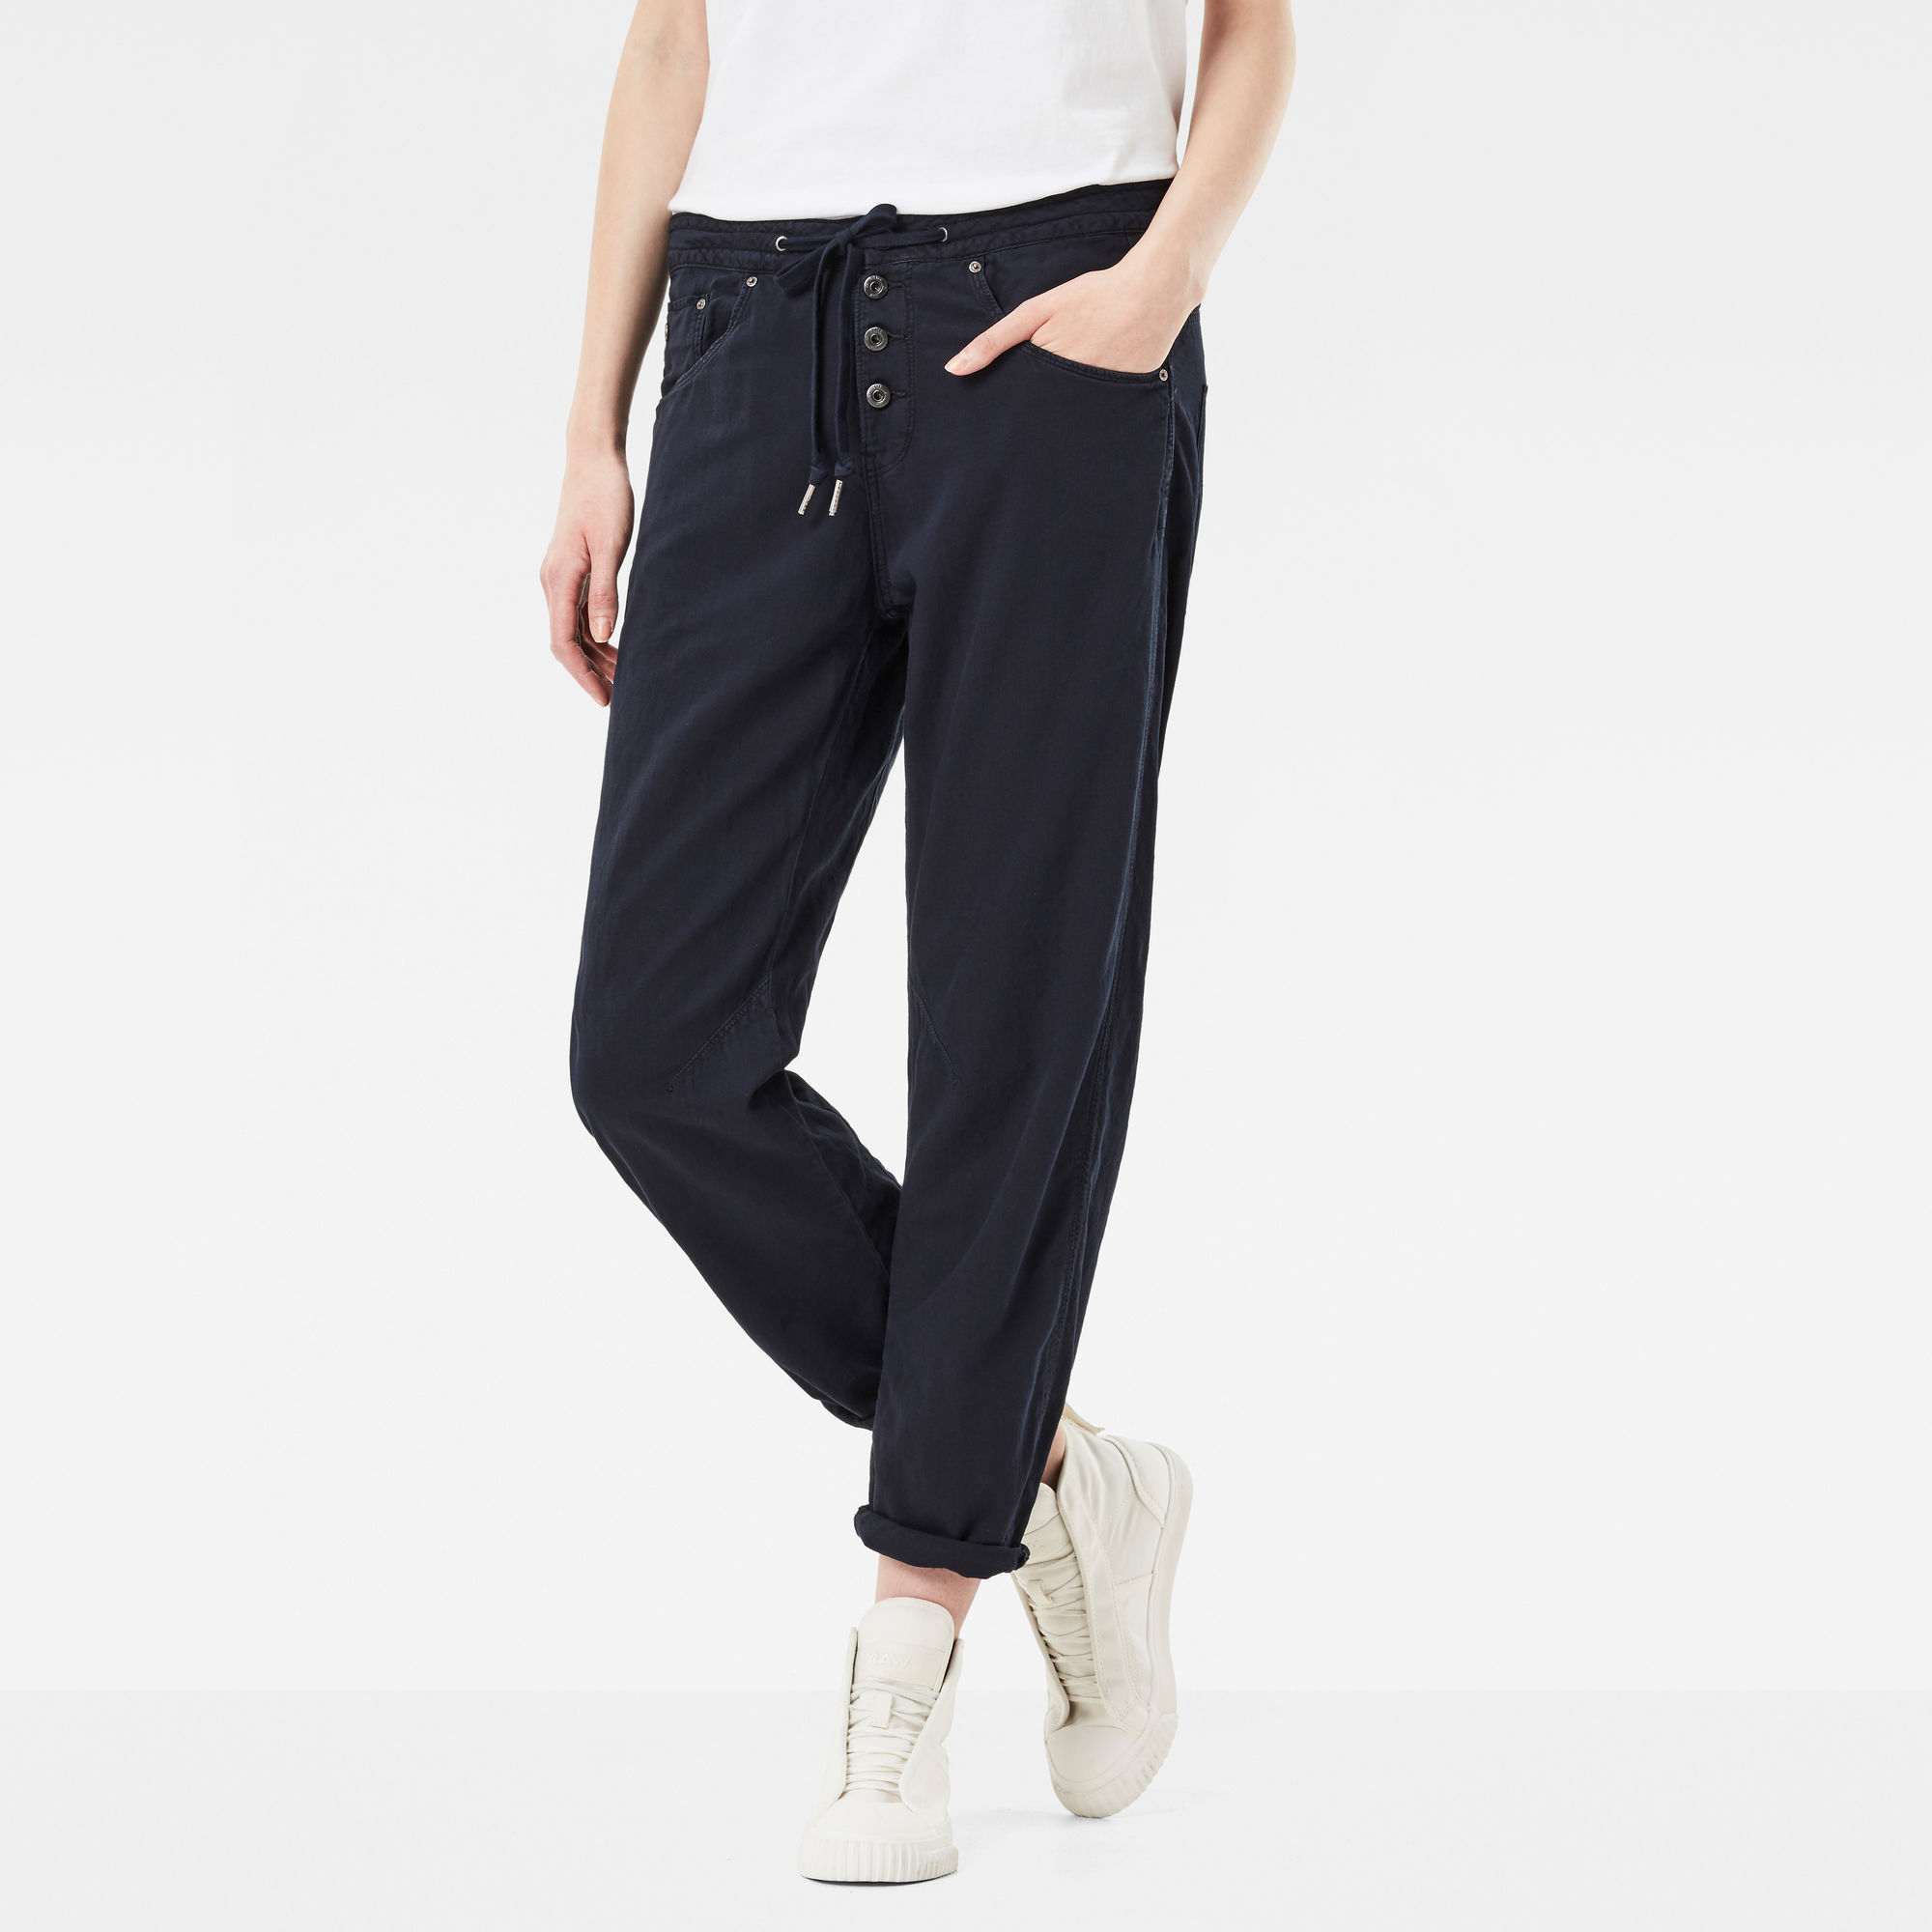 Arc 3D Oversized Low Waist 7/8 Jeans